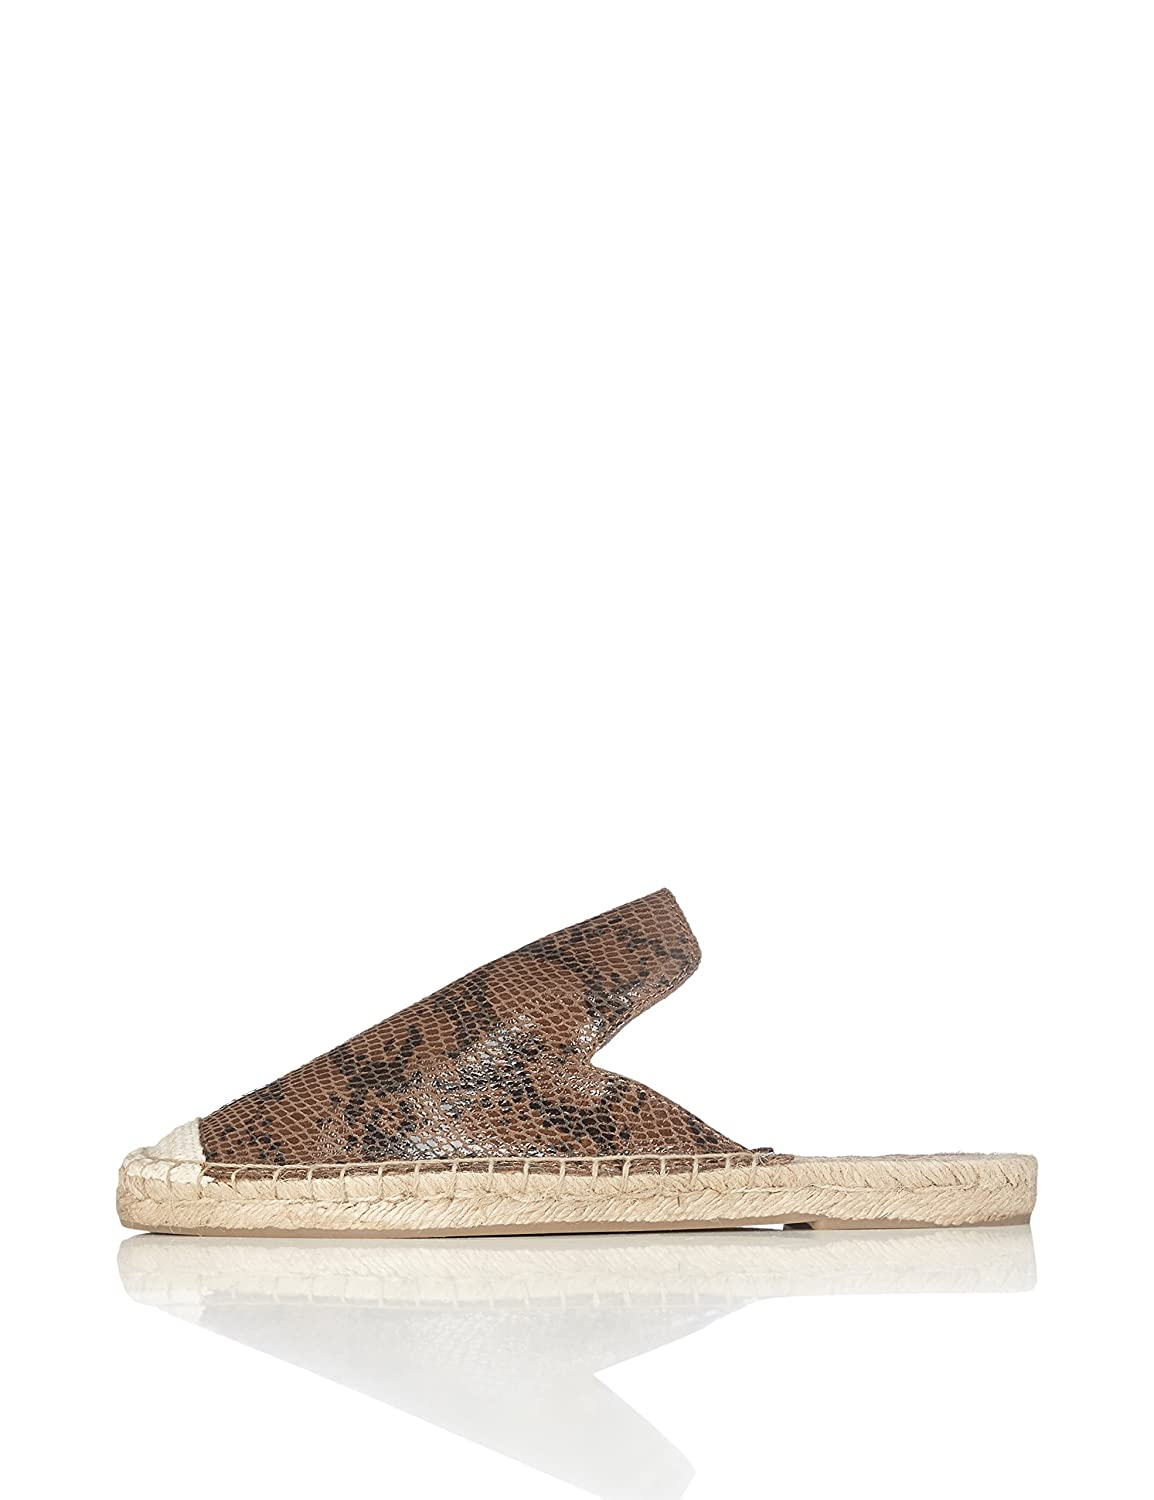 FIND Espadrilles Chaussons Mules Femme